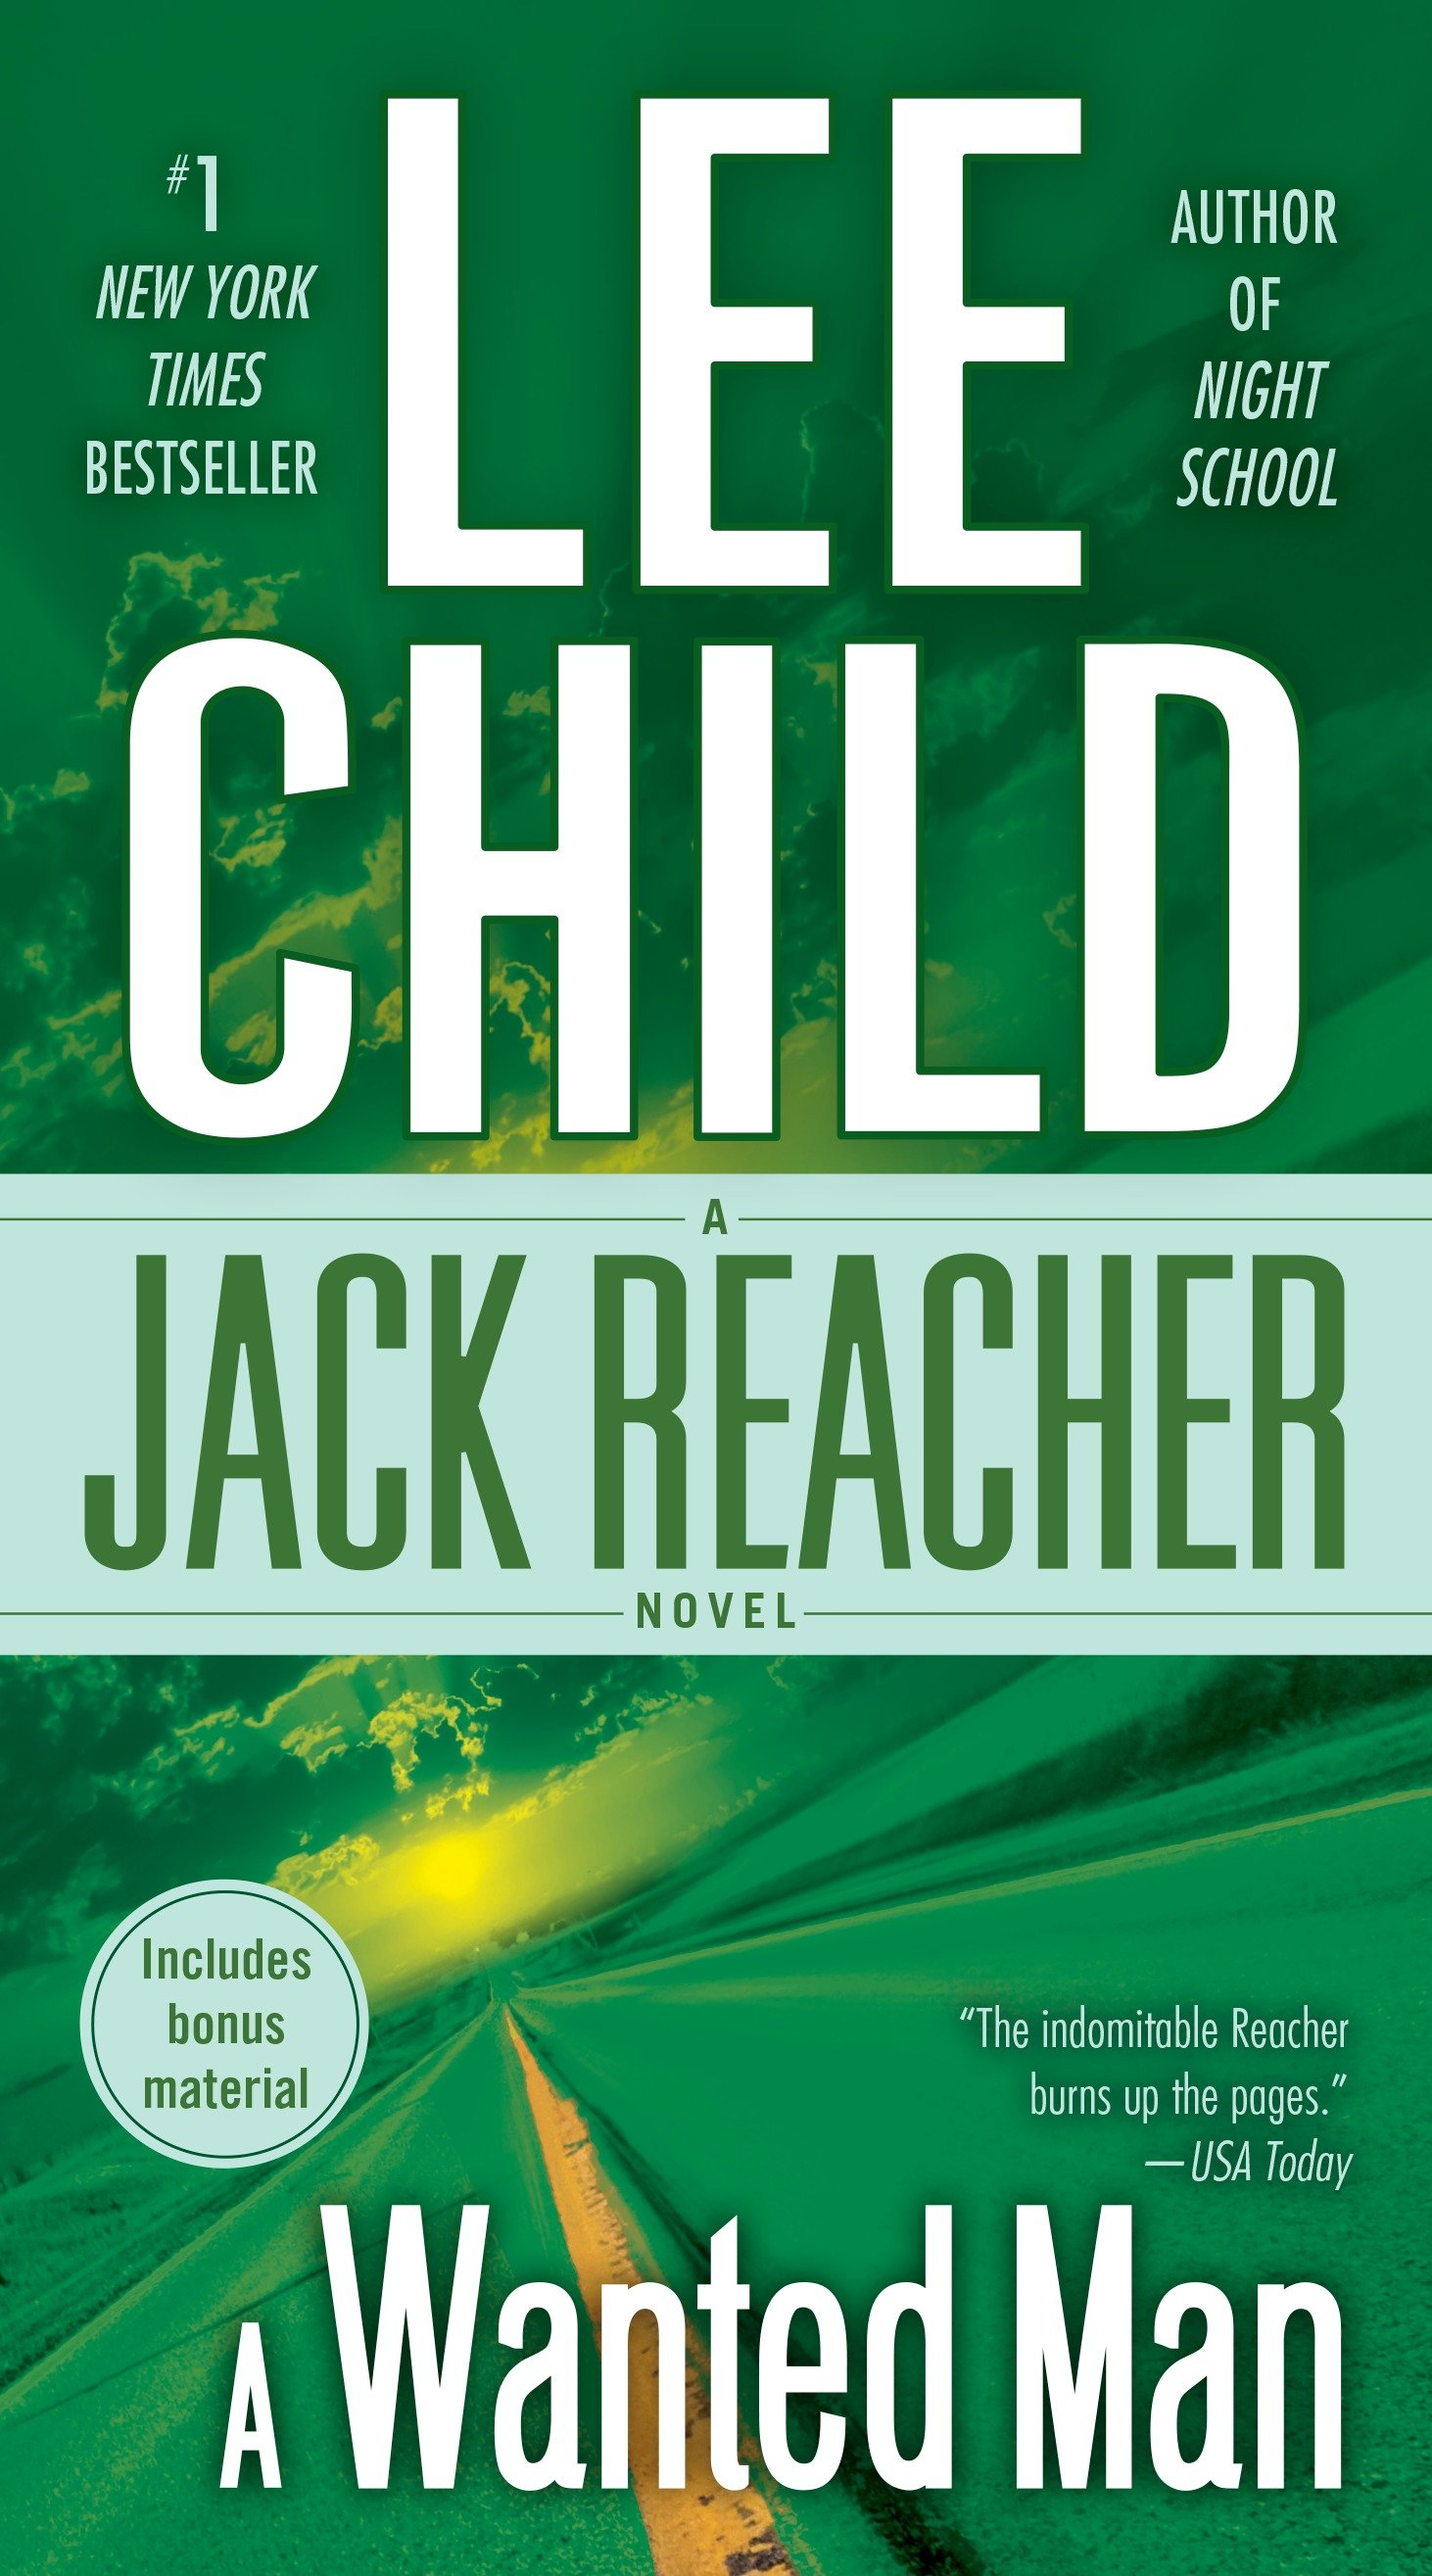 A wanted man a Jack Reacher novel